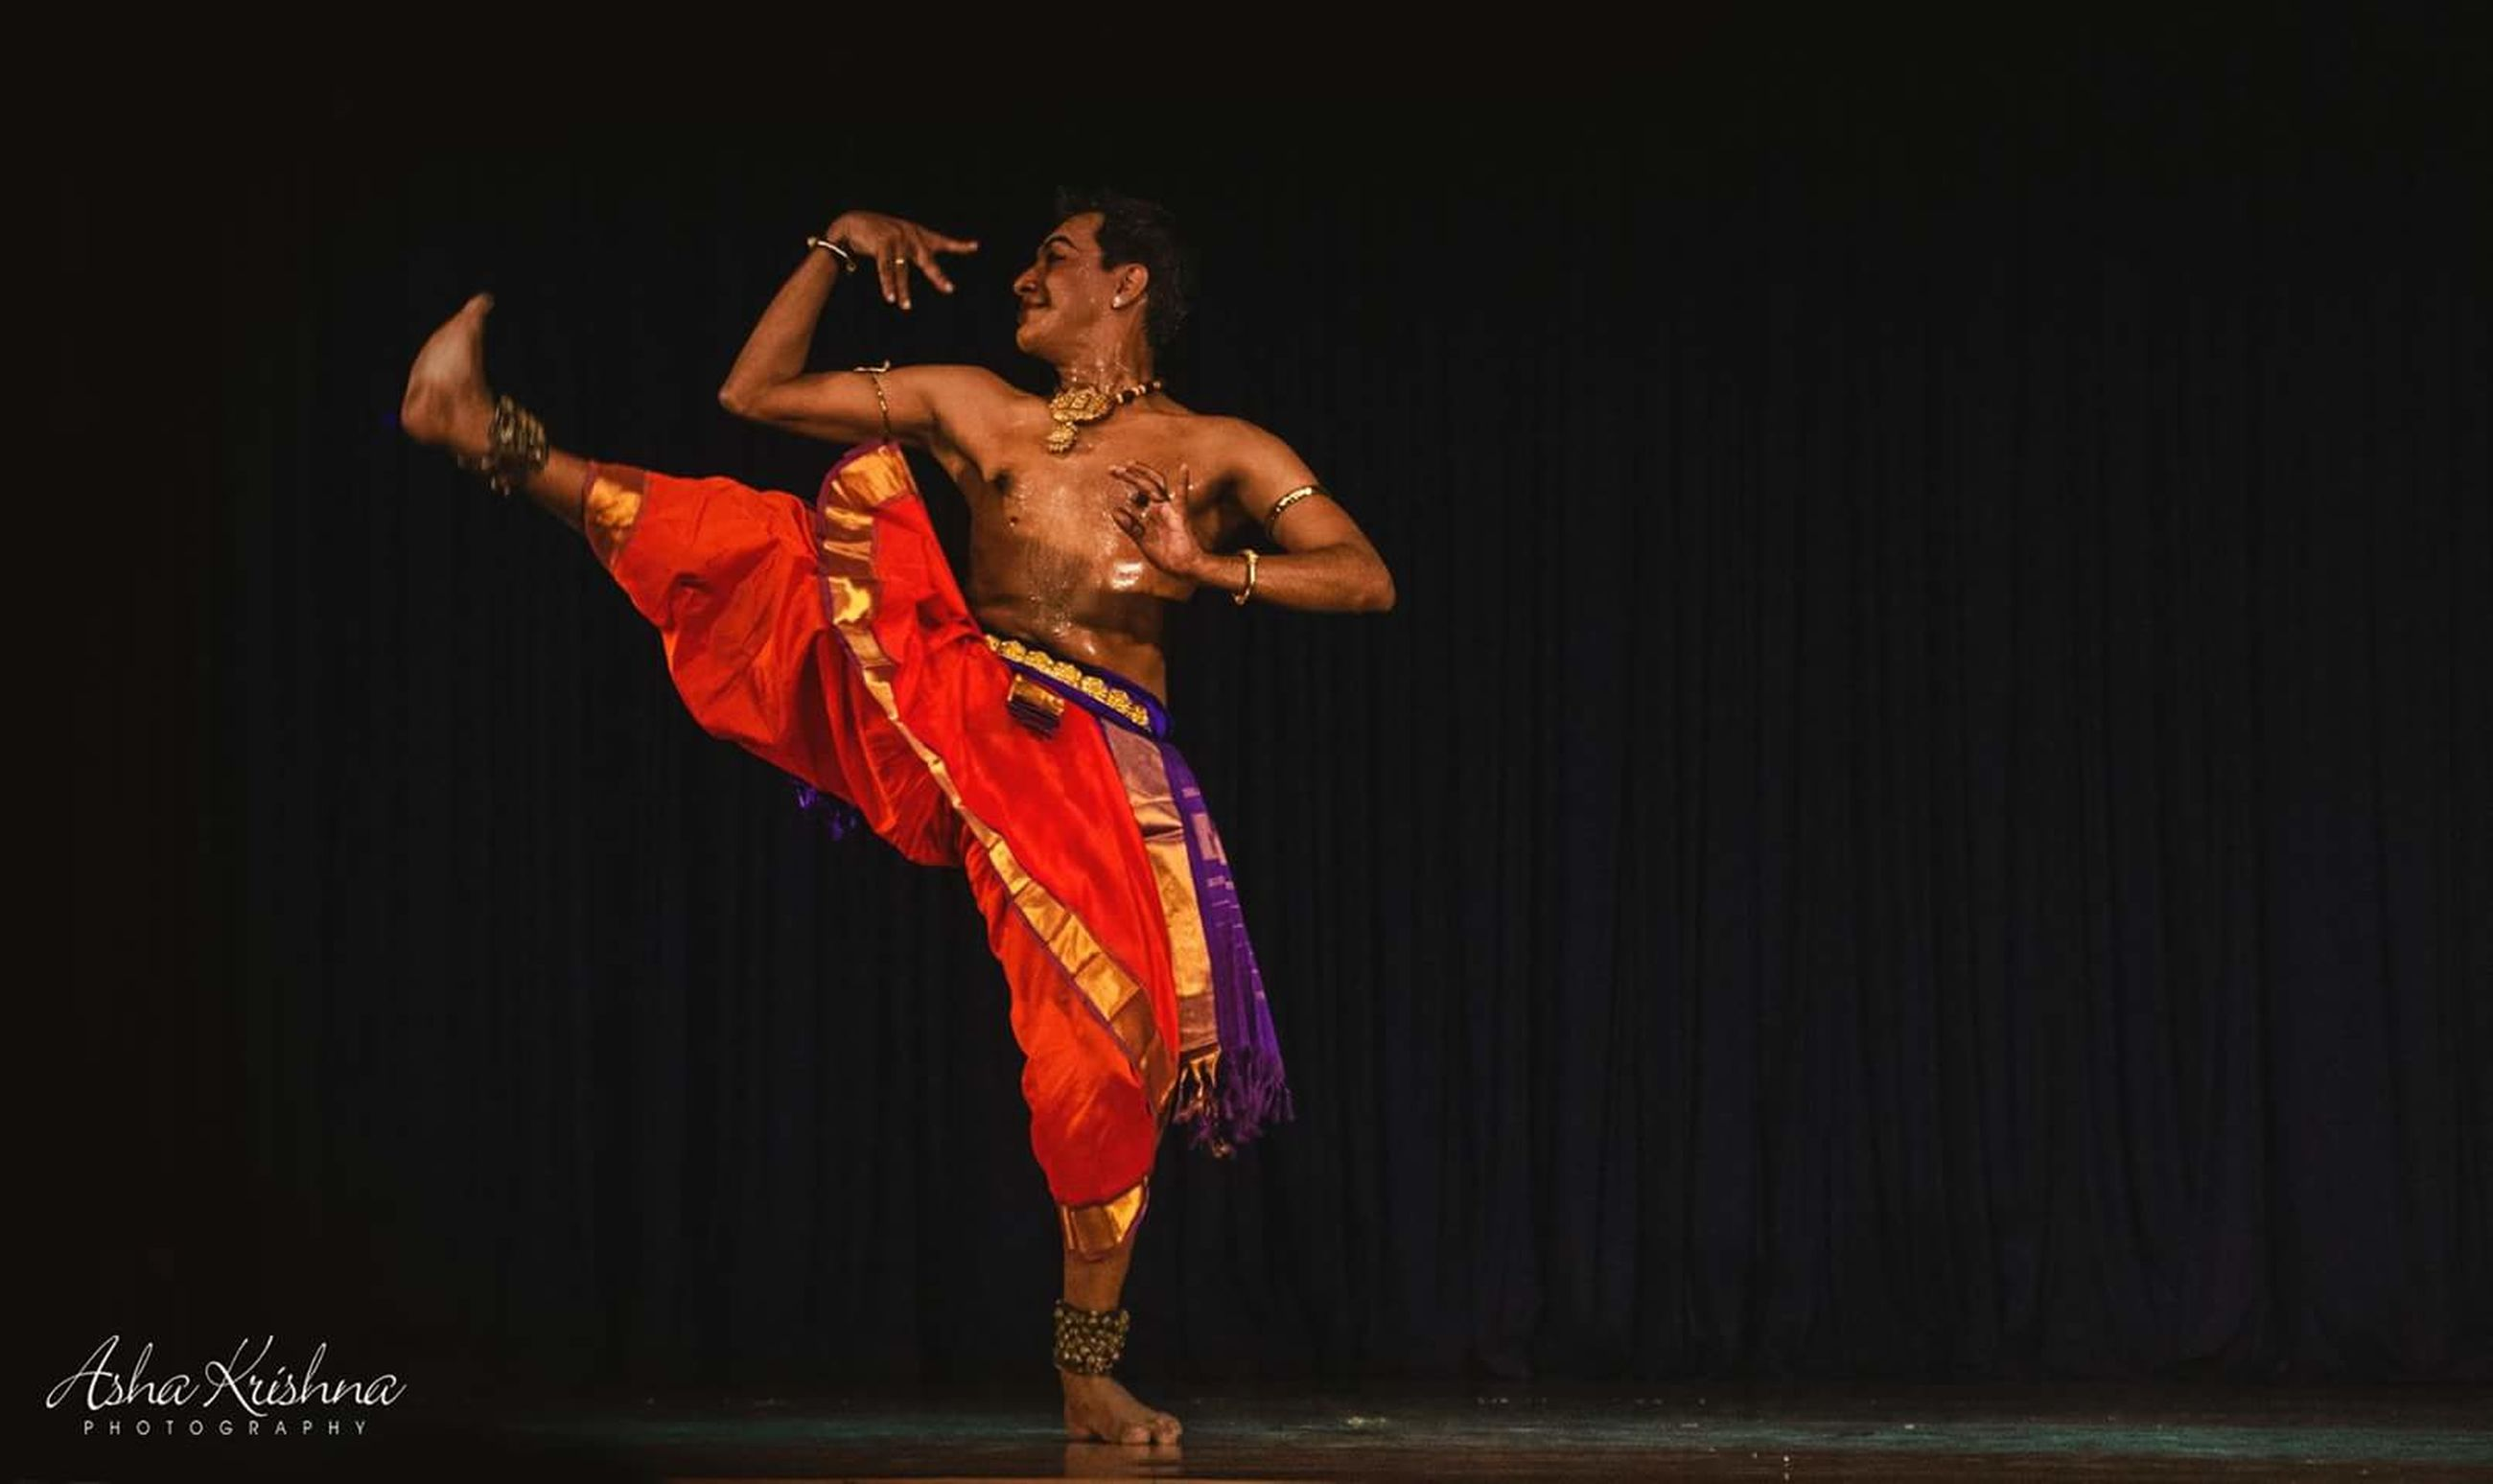 dancing, performance, full length, performing arts event, arms raised, stage costume, adults only, arts culture and entertainment, traditional clothing, one person, people, skill, cultures, adult, human arm, stage - performance space, young adult, only women, indoors